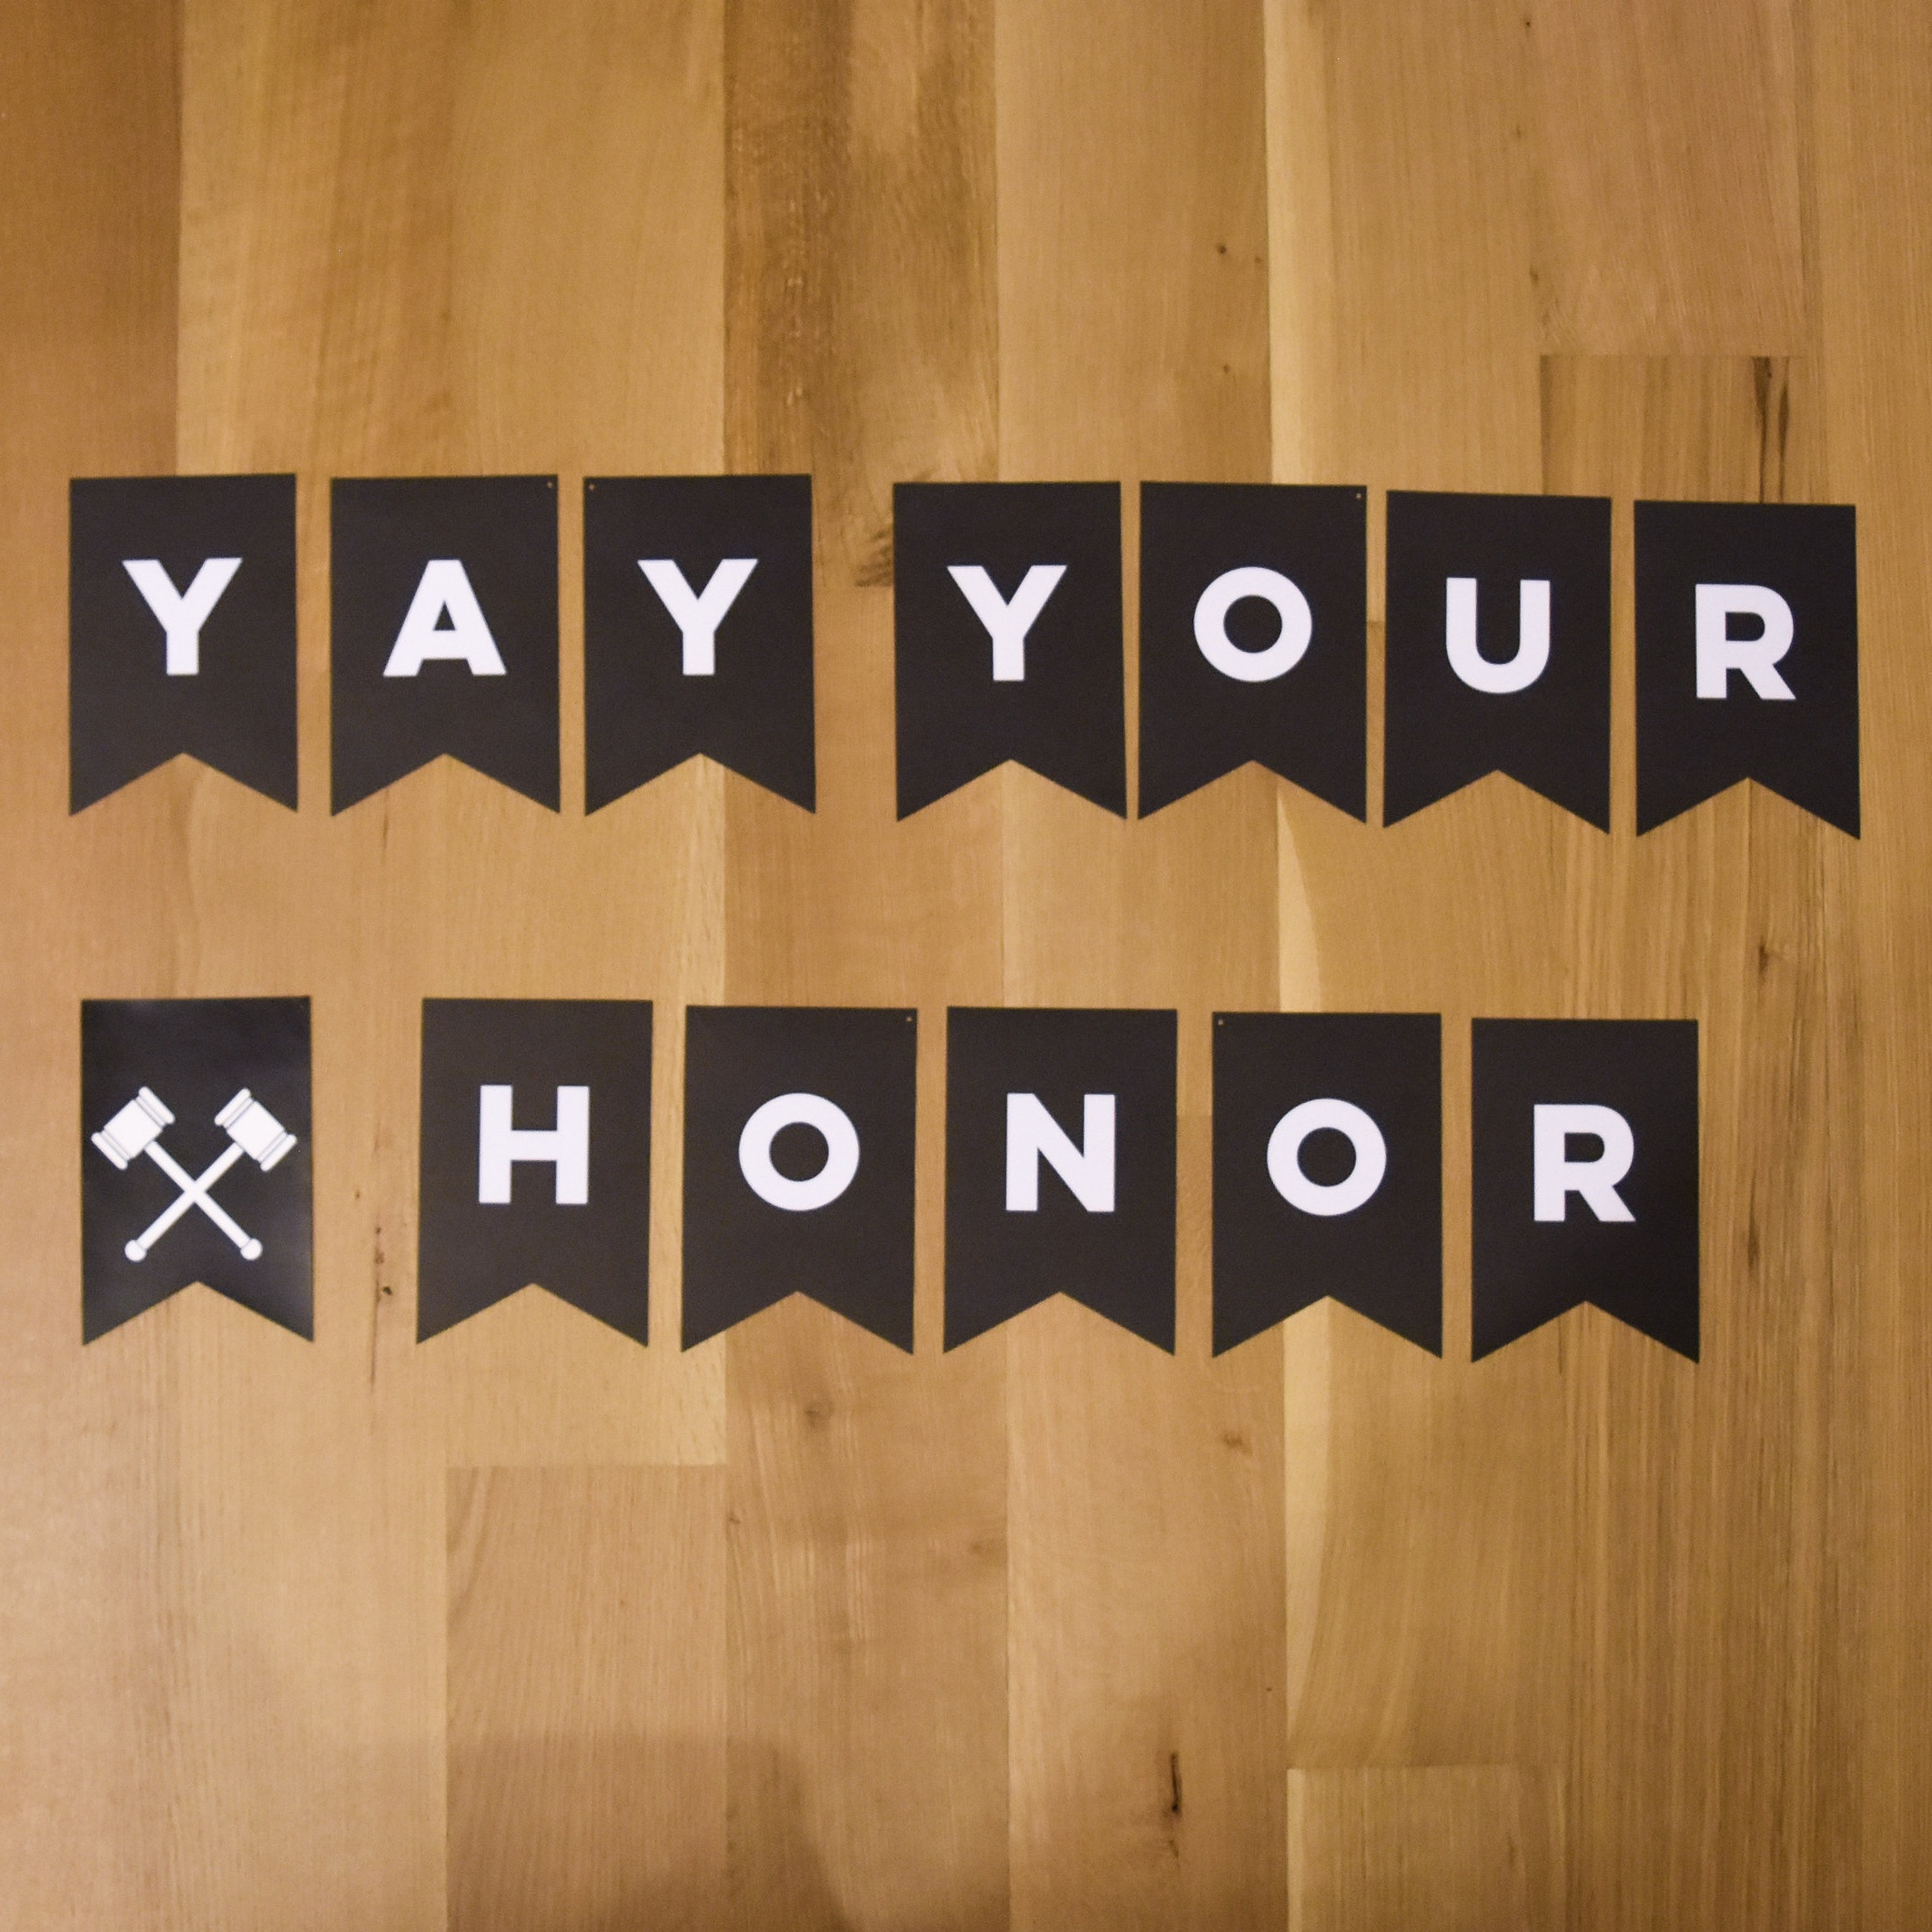 Yay Your Honor Bunting (1)